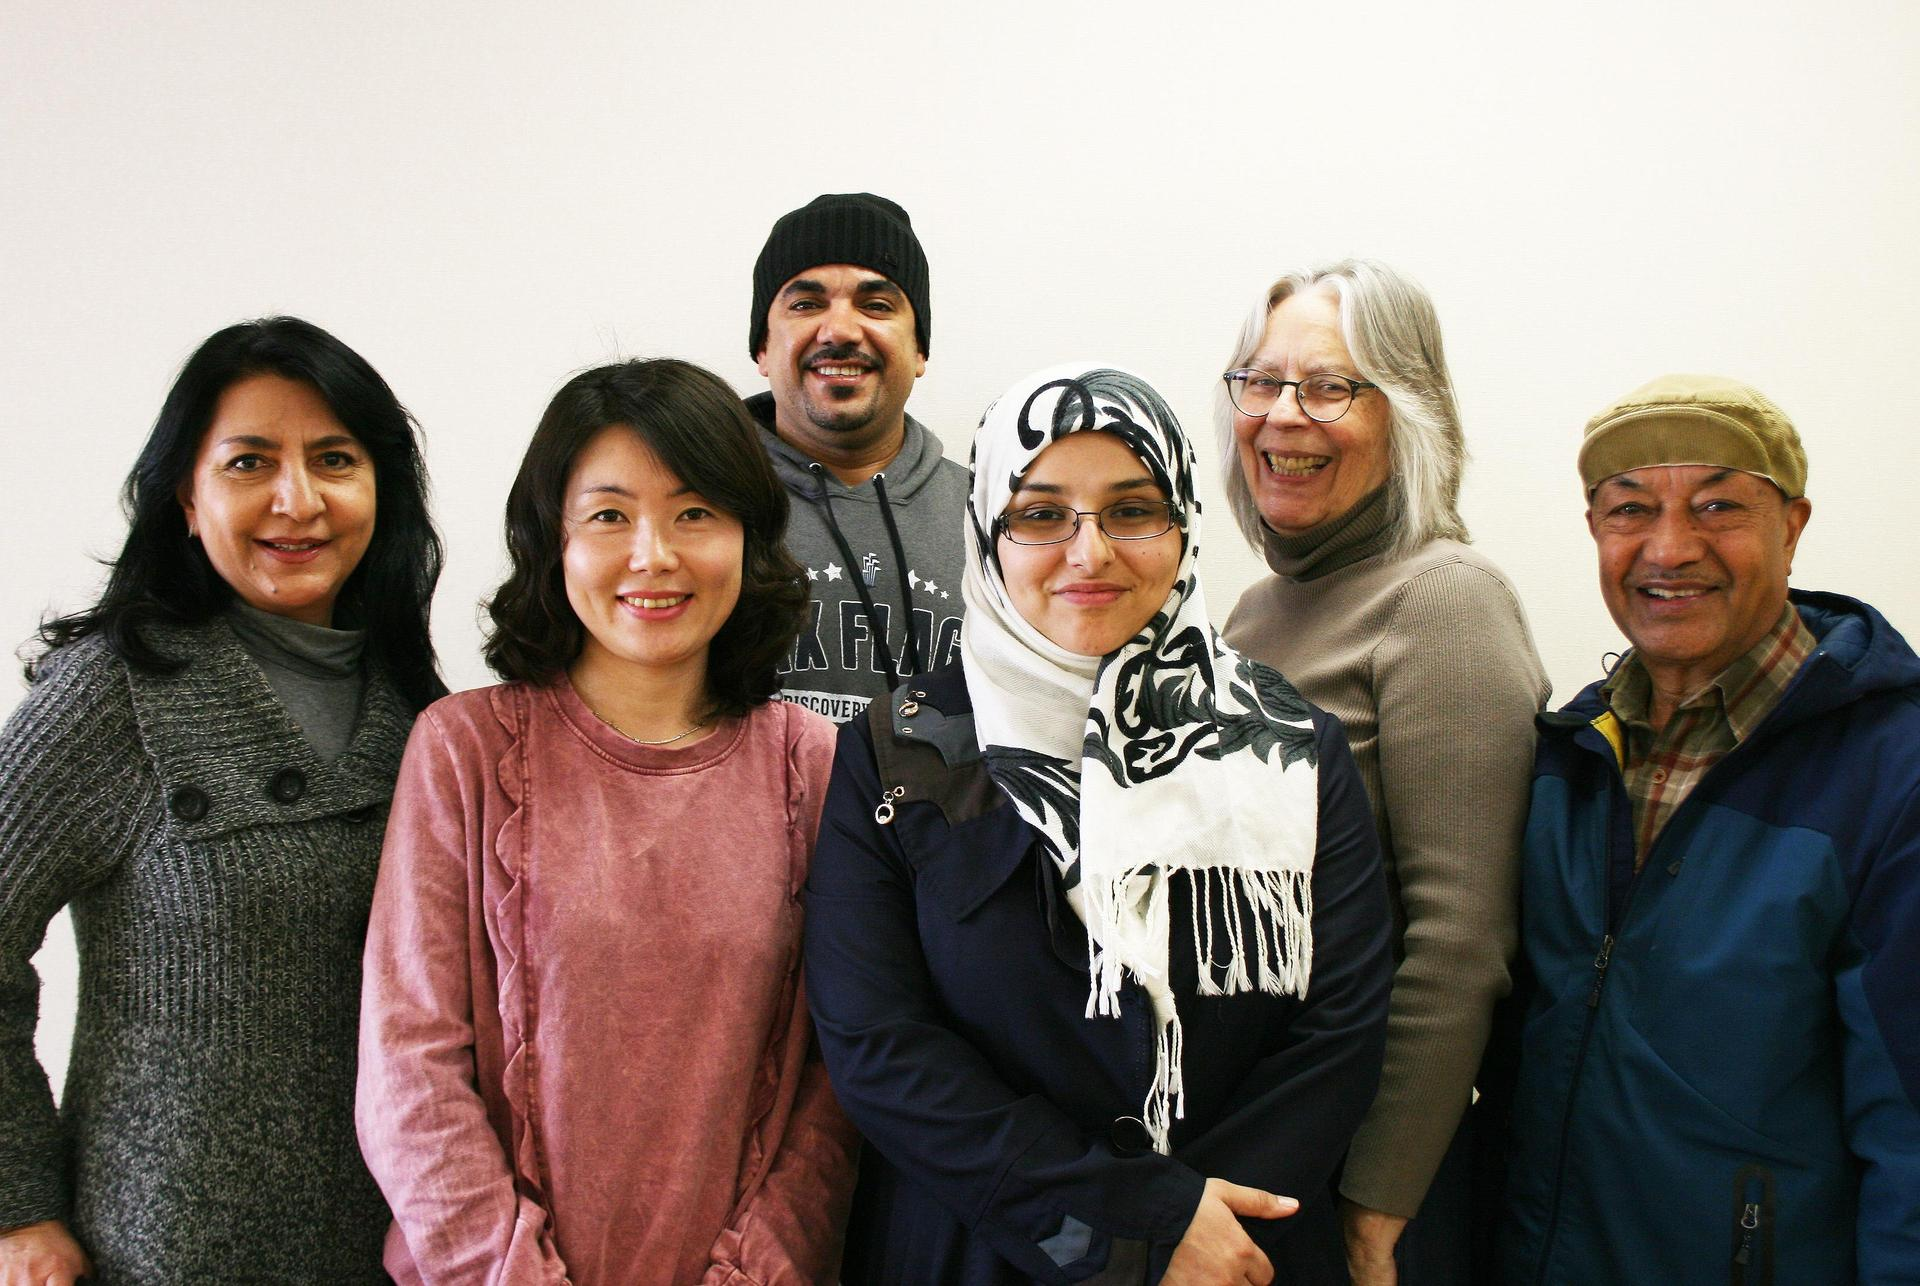 A group of six adult students smiling at the camera.